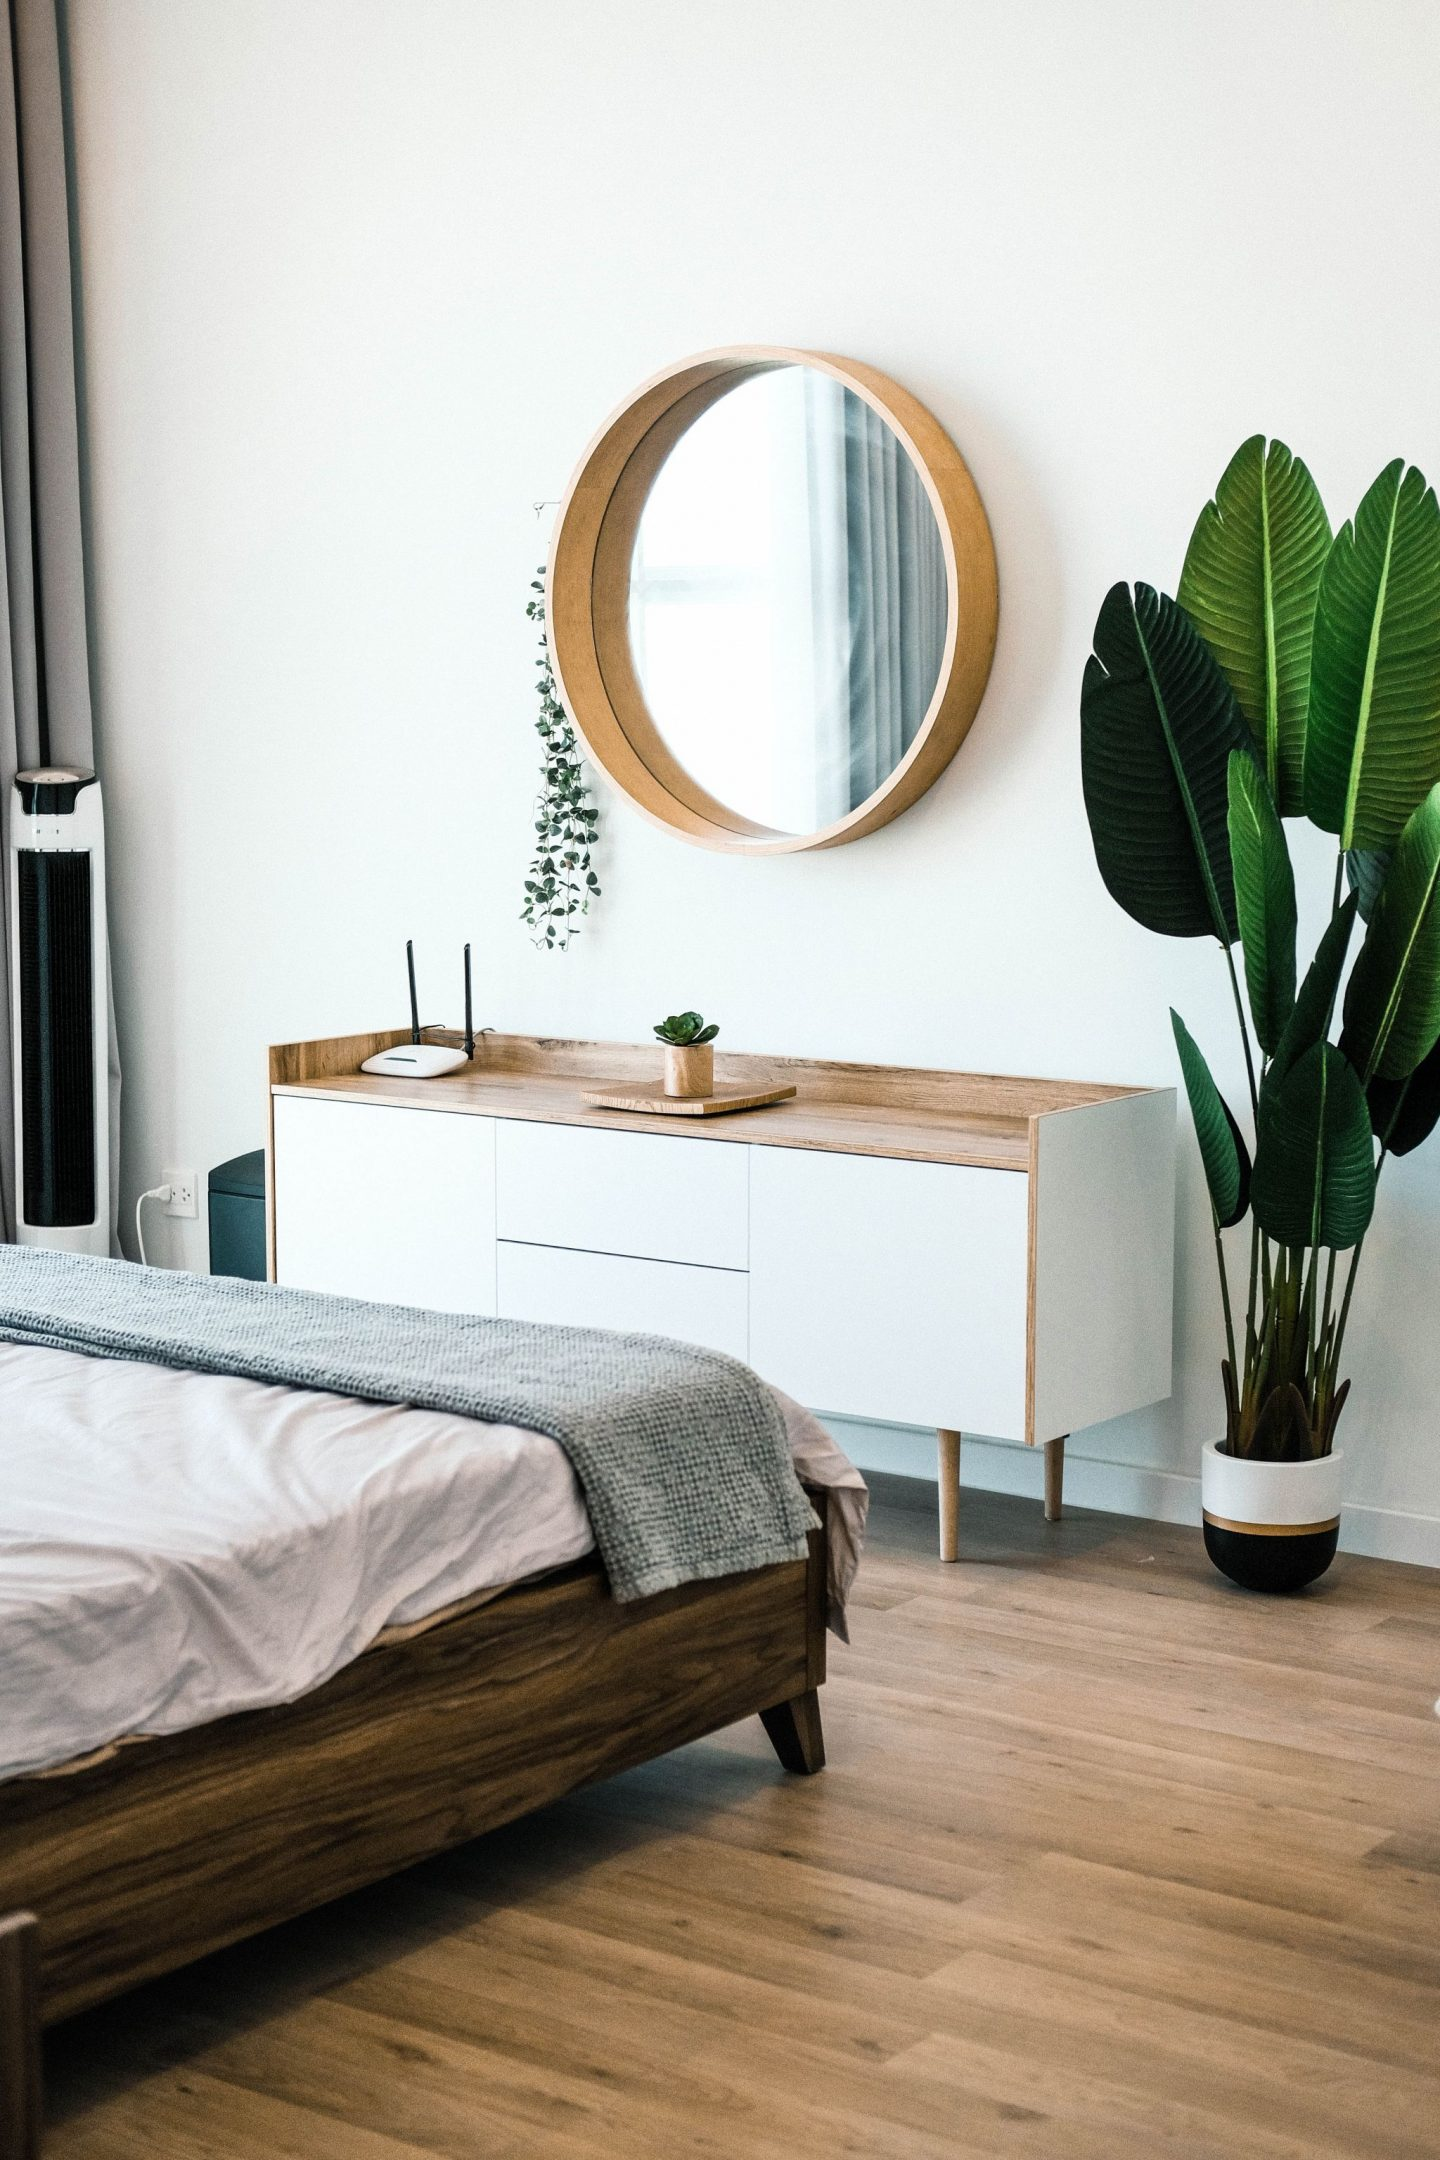 6 TOP TIPS TO STYLING YOUR HOME LIKE YOU'VE HIRED A INTERIOR DESIGNER